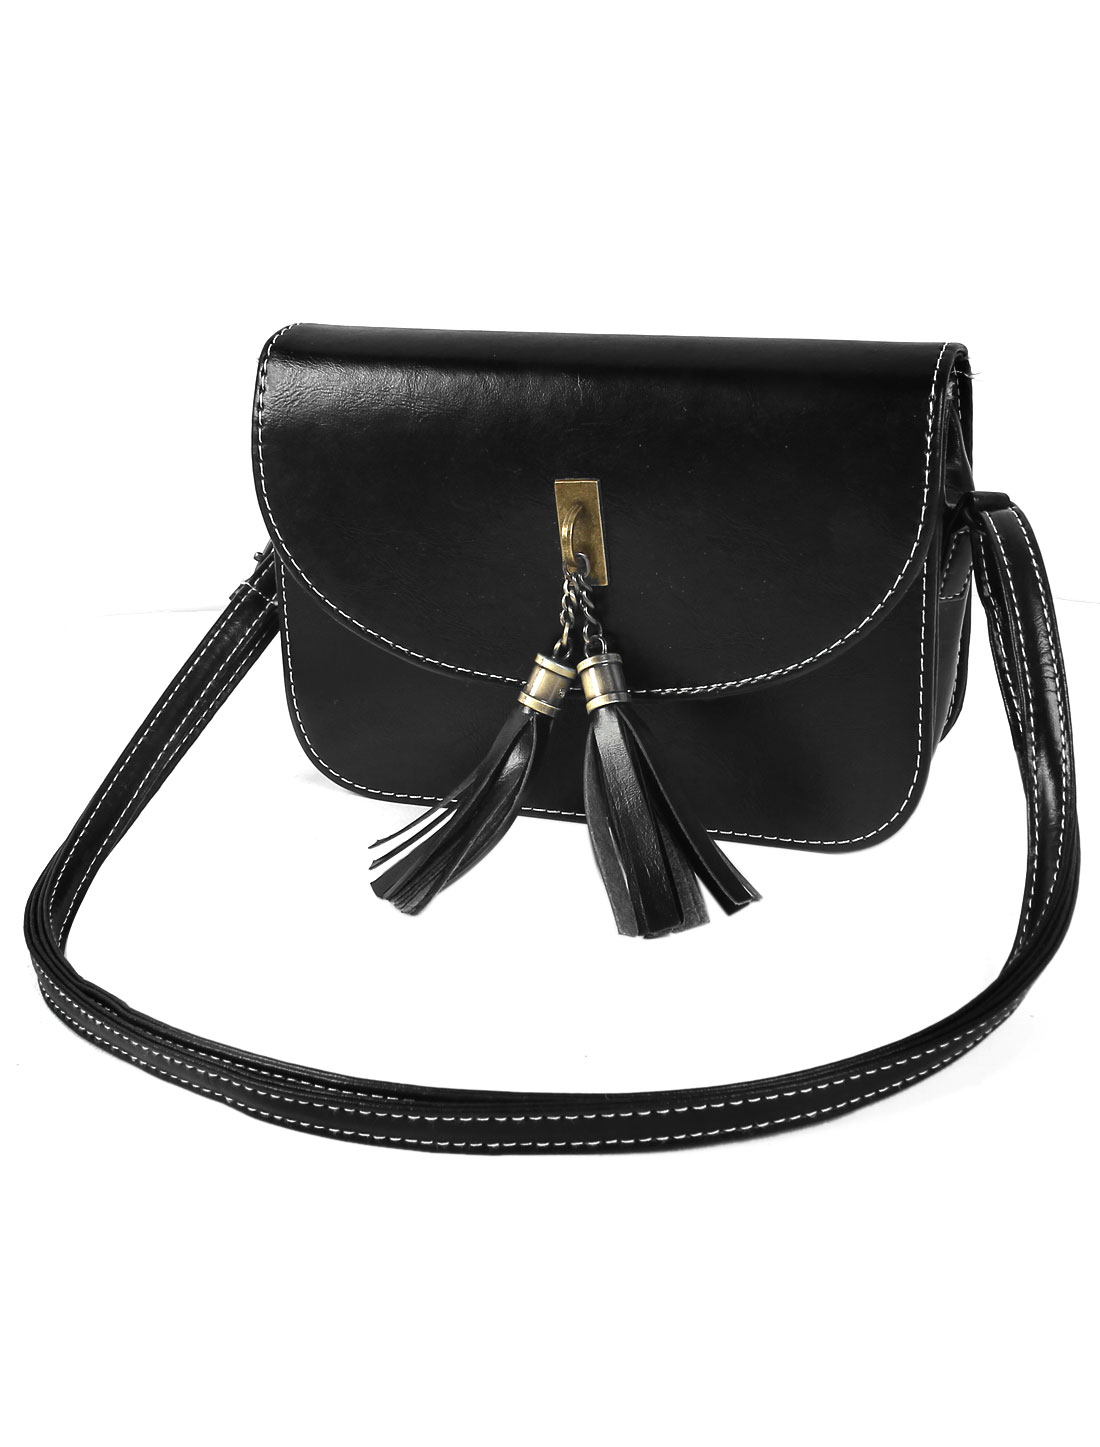 Women Tassel PU Leather Handbag Tote Purse Hobo Messenger Shoulder Bag Black